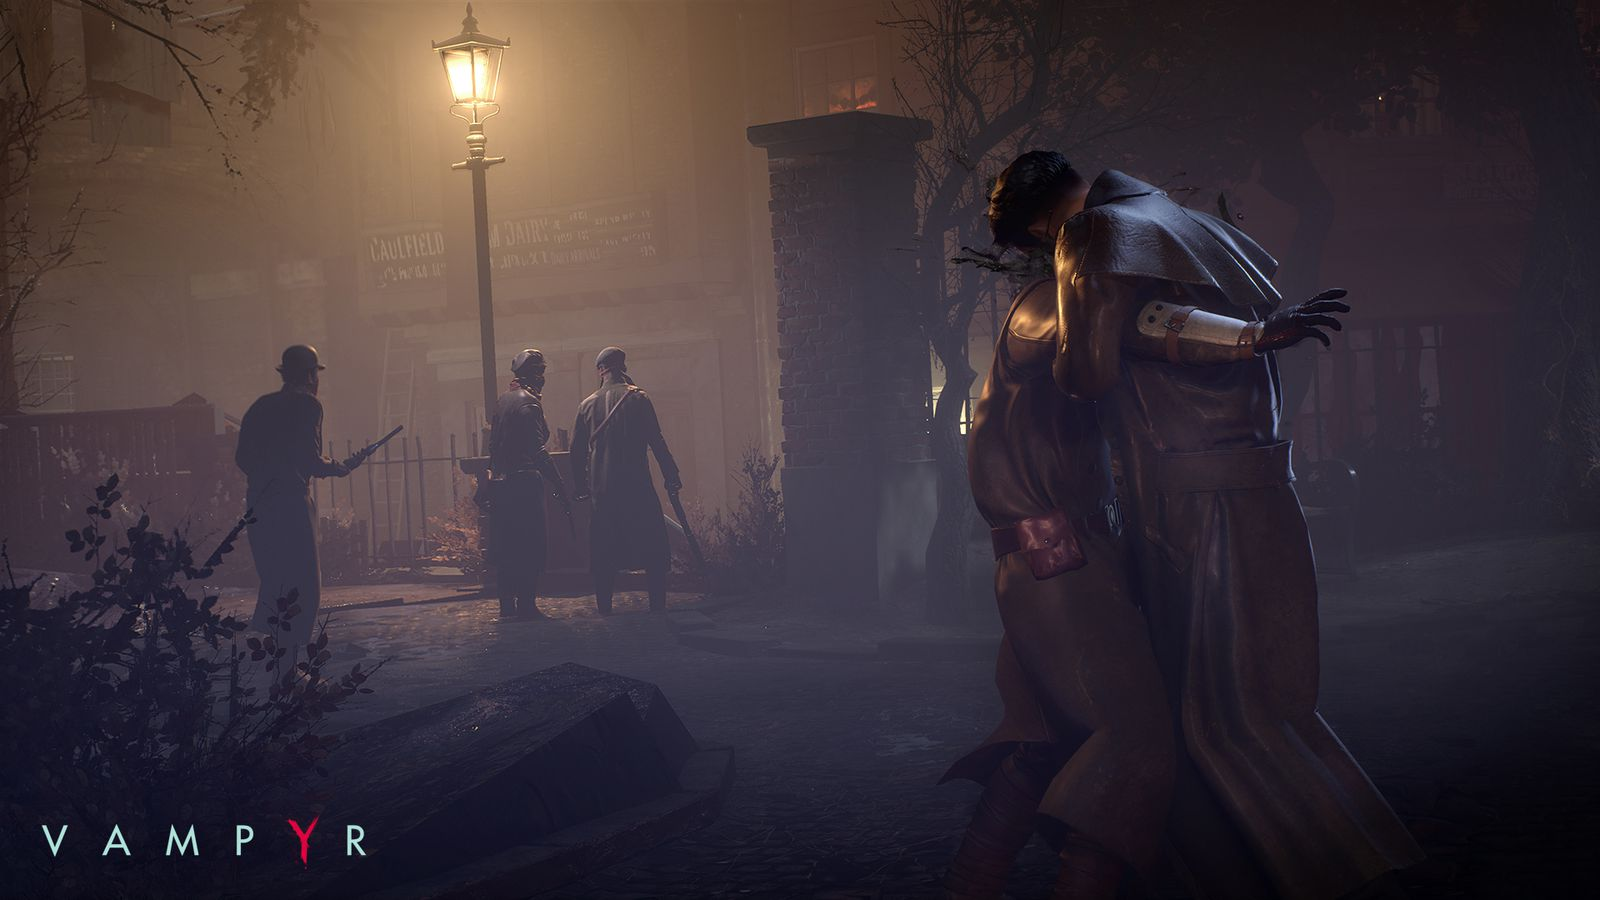 Vampyr is not the game we expected to see from the makers of Life is Strange